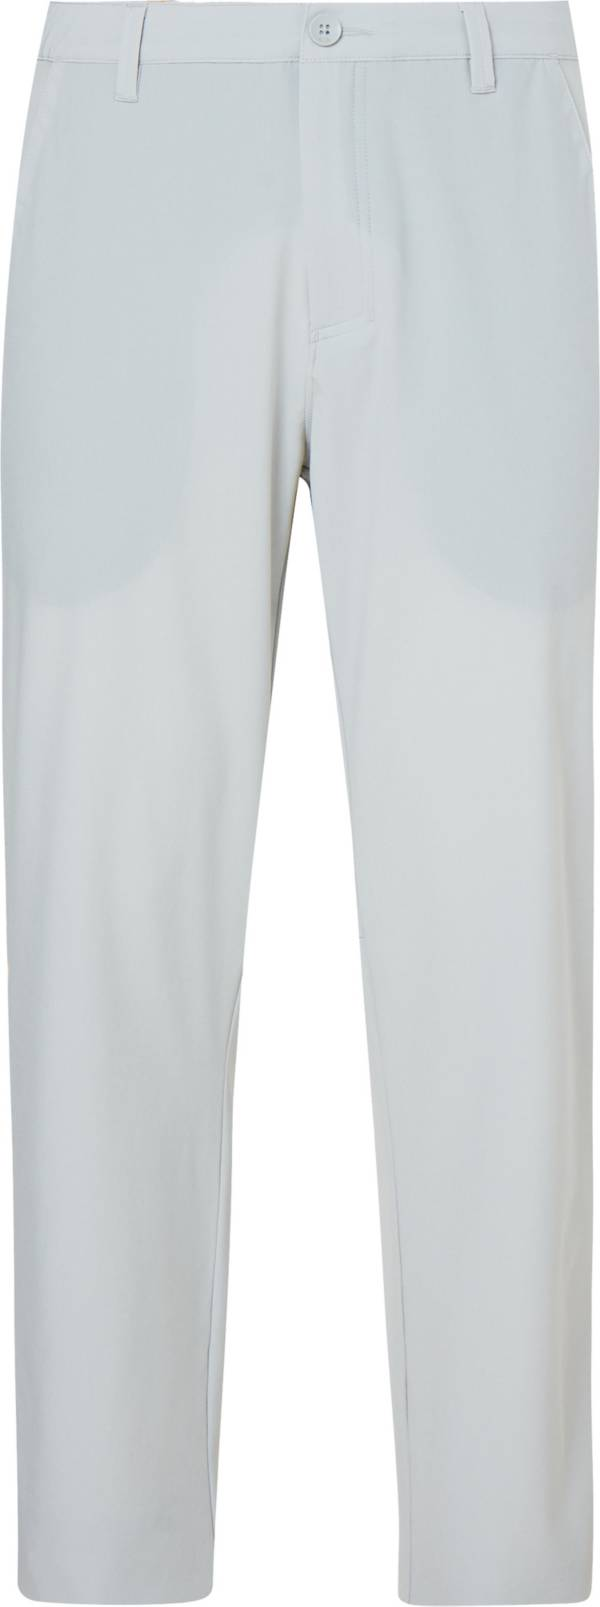 Oakley Men's Take Pro 2.0 Golf Pants product image